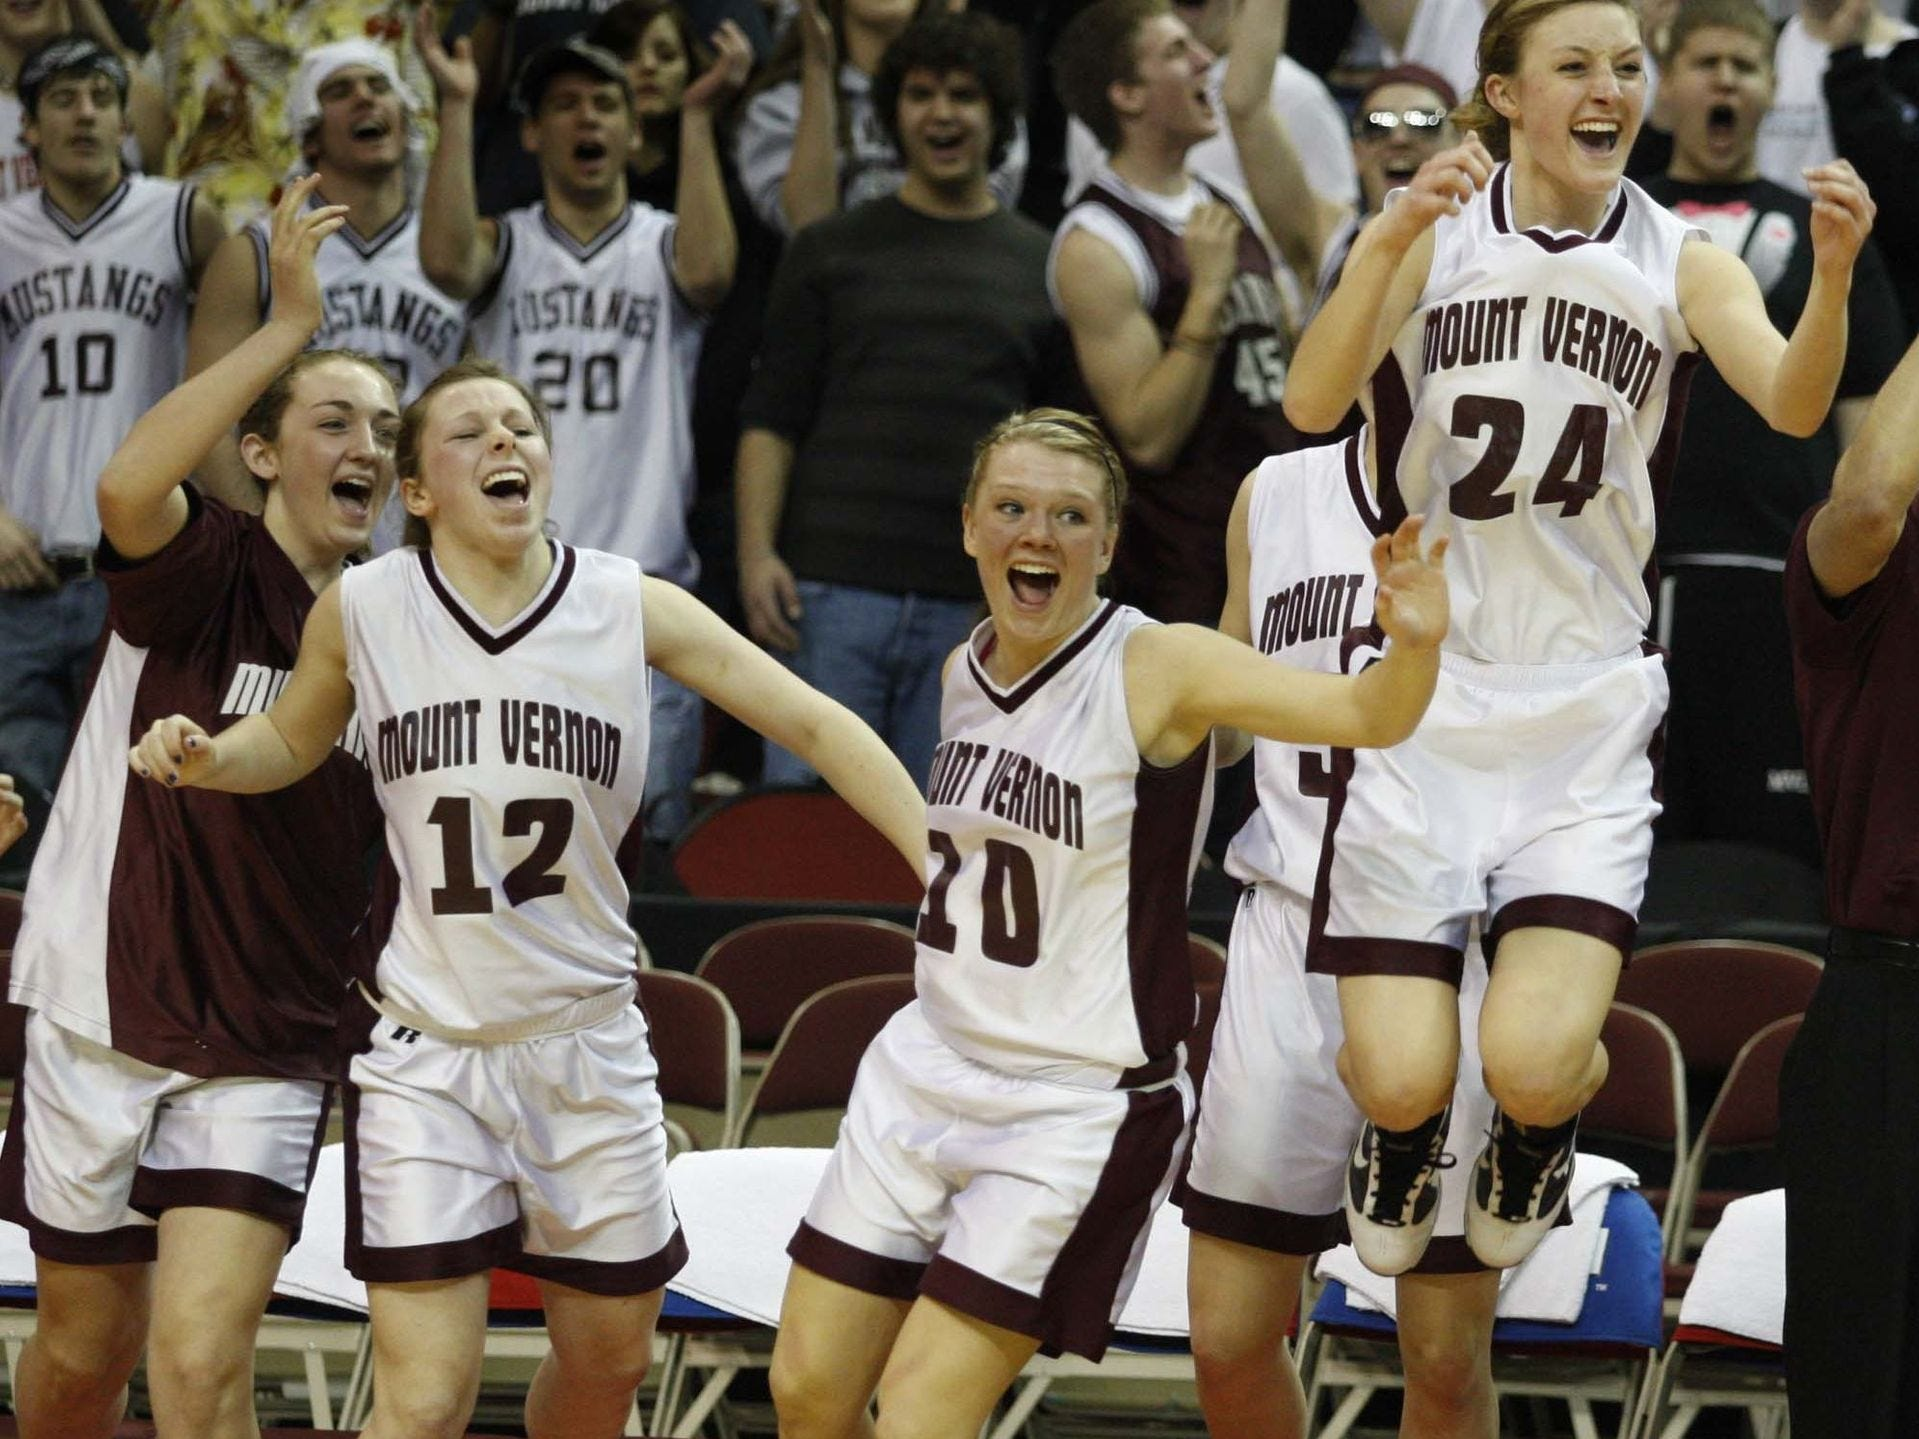 2010: Mount Vernon's Sarah Ryan (12), Kylea Weber (10) and Courtney Kintzel (24) leap for joy as the time runs out in their 2-A semifinal win against Roland-Story. Register file photo